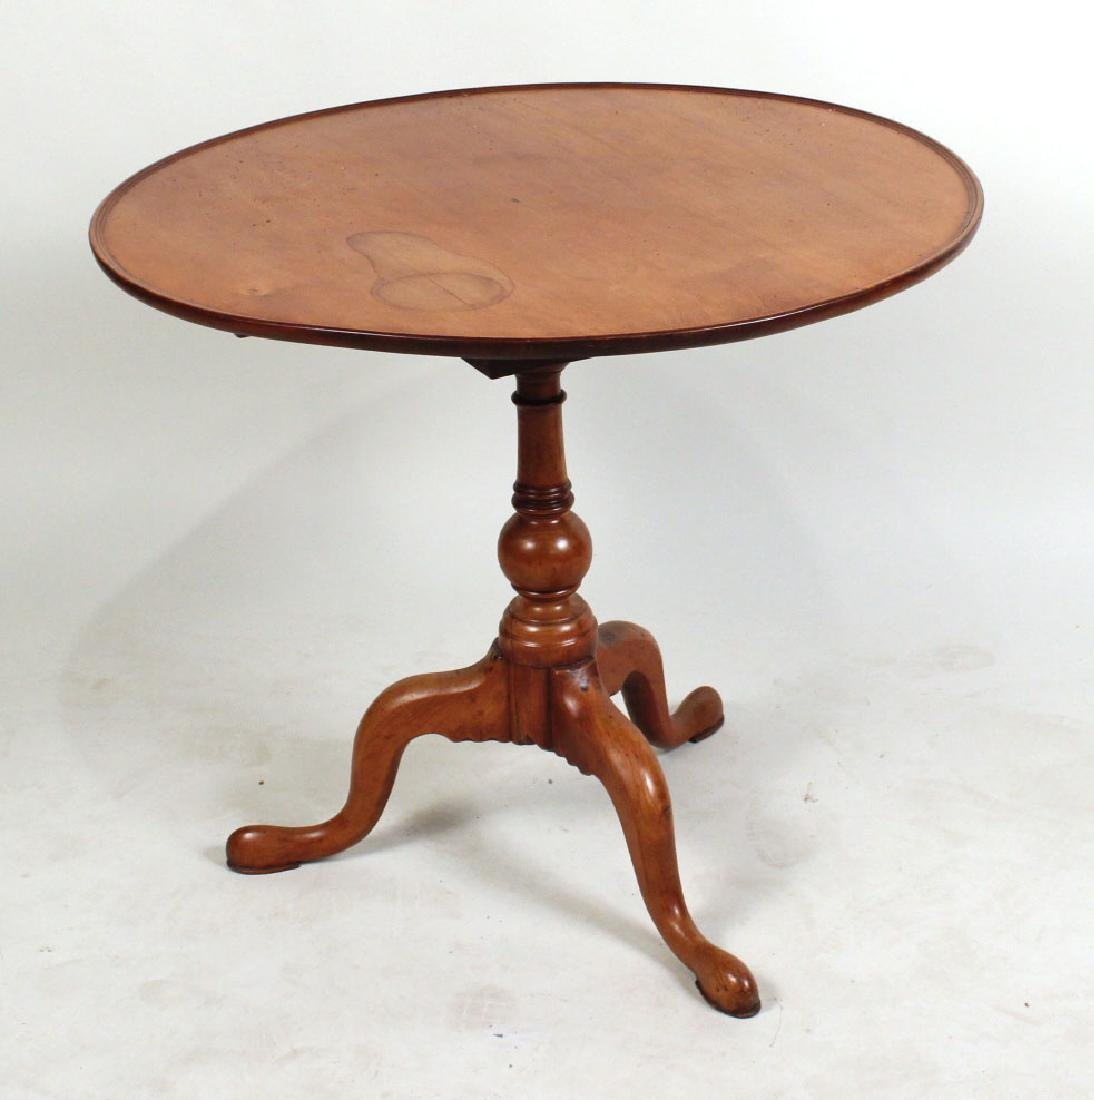 Chippendale Turned Cherrywood Tilt-Top Tea Table